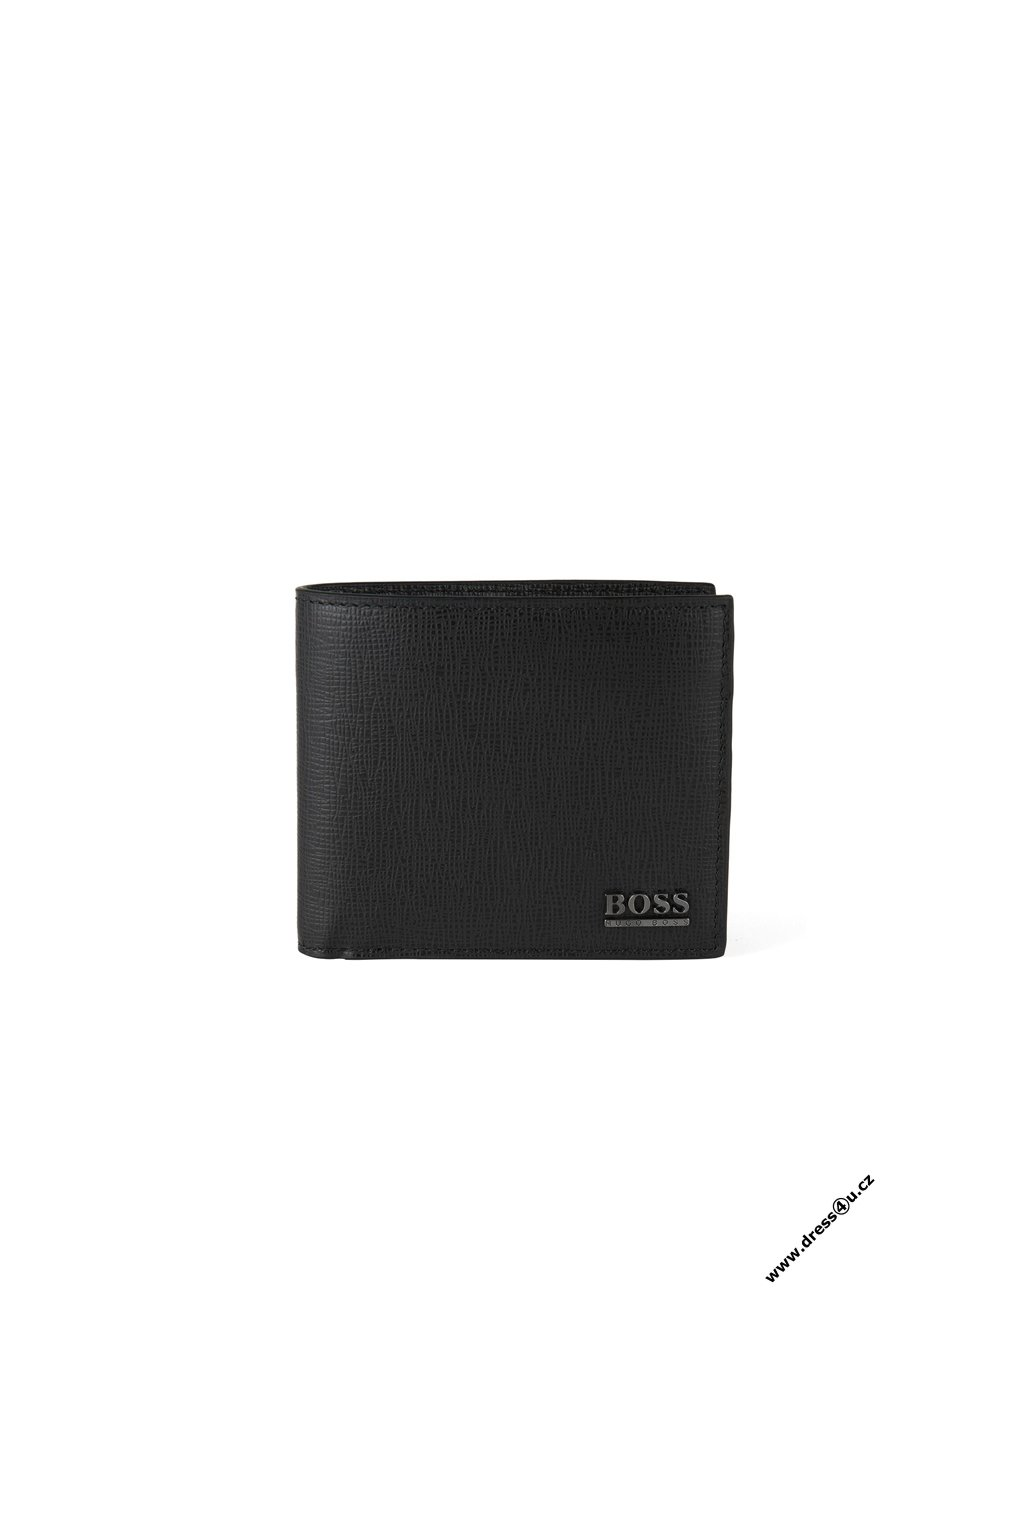 Leather wallet Mensur Black B 3934